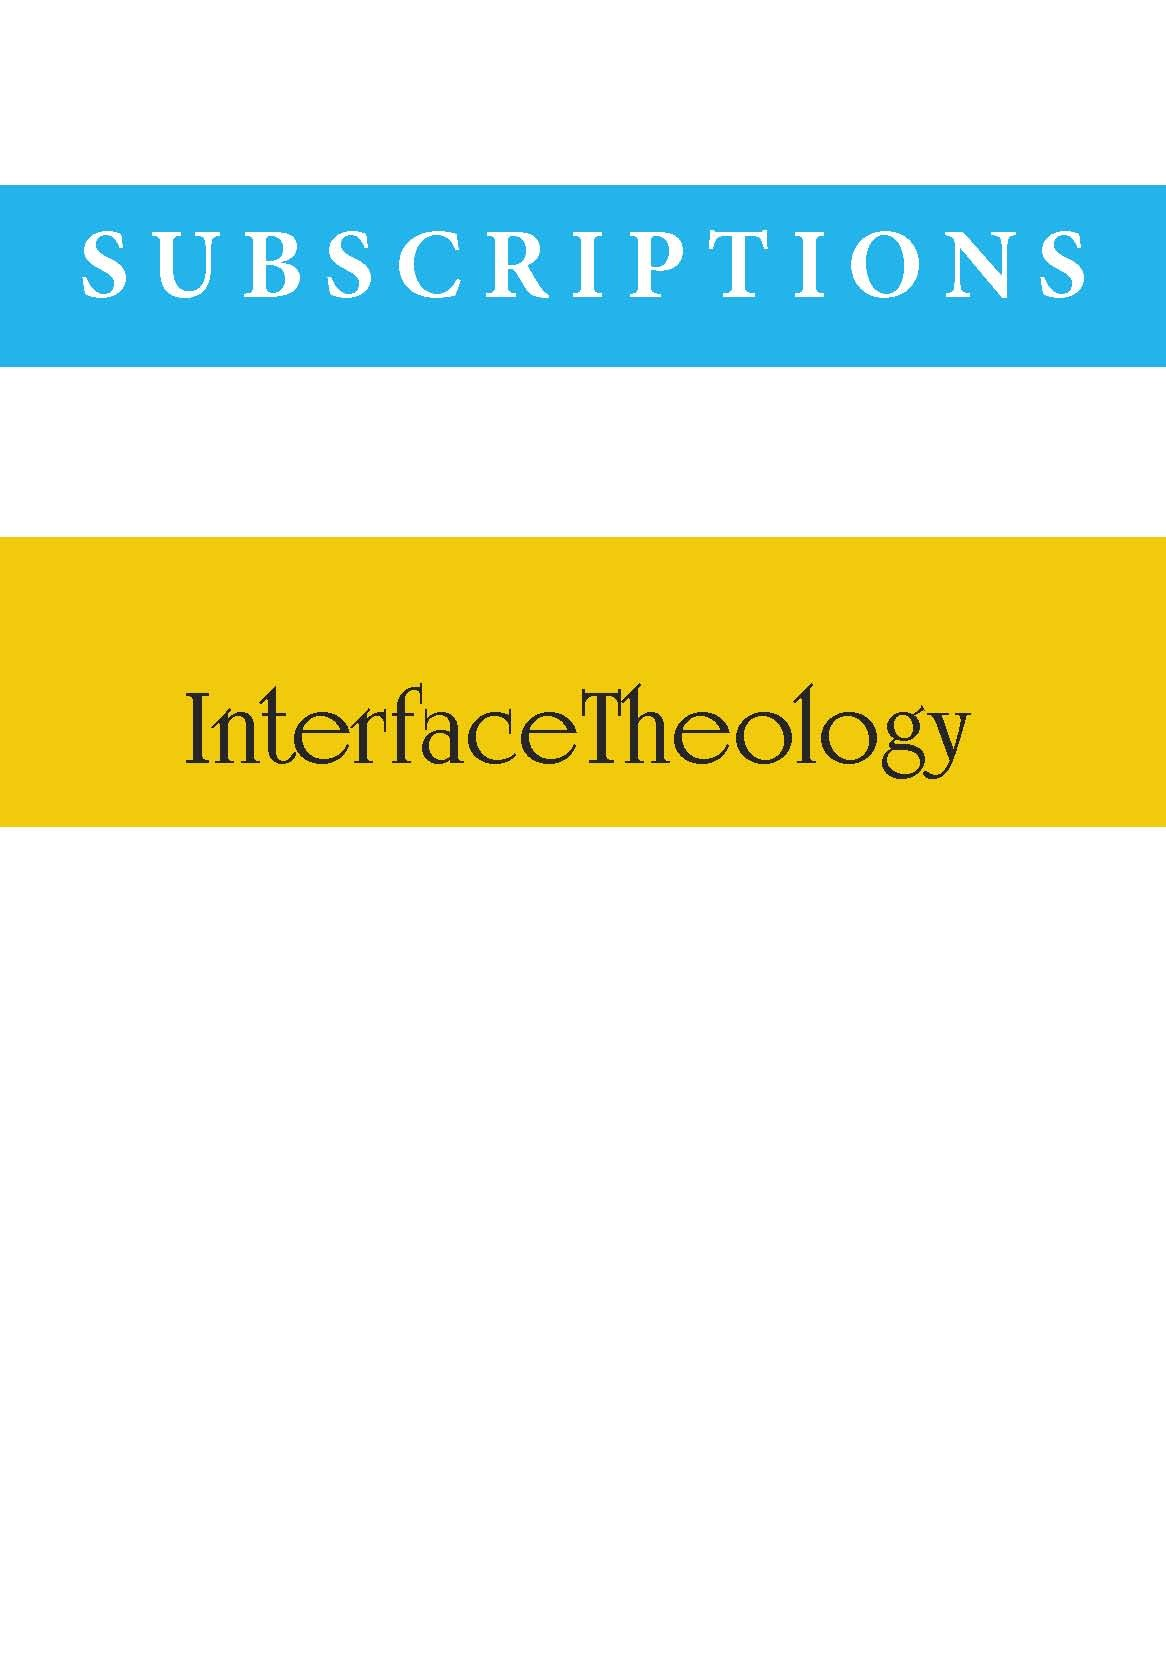 InterfaceTheology Subscriptions (INSTITUTIONS, AUSTRALIA)